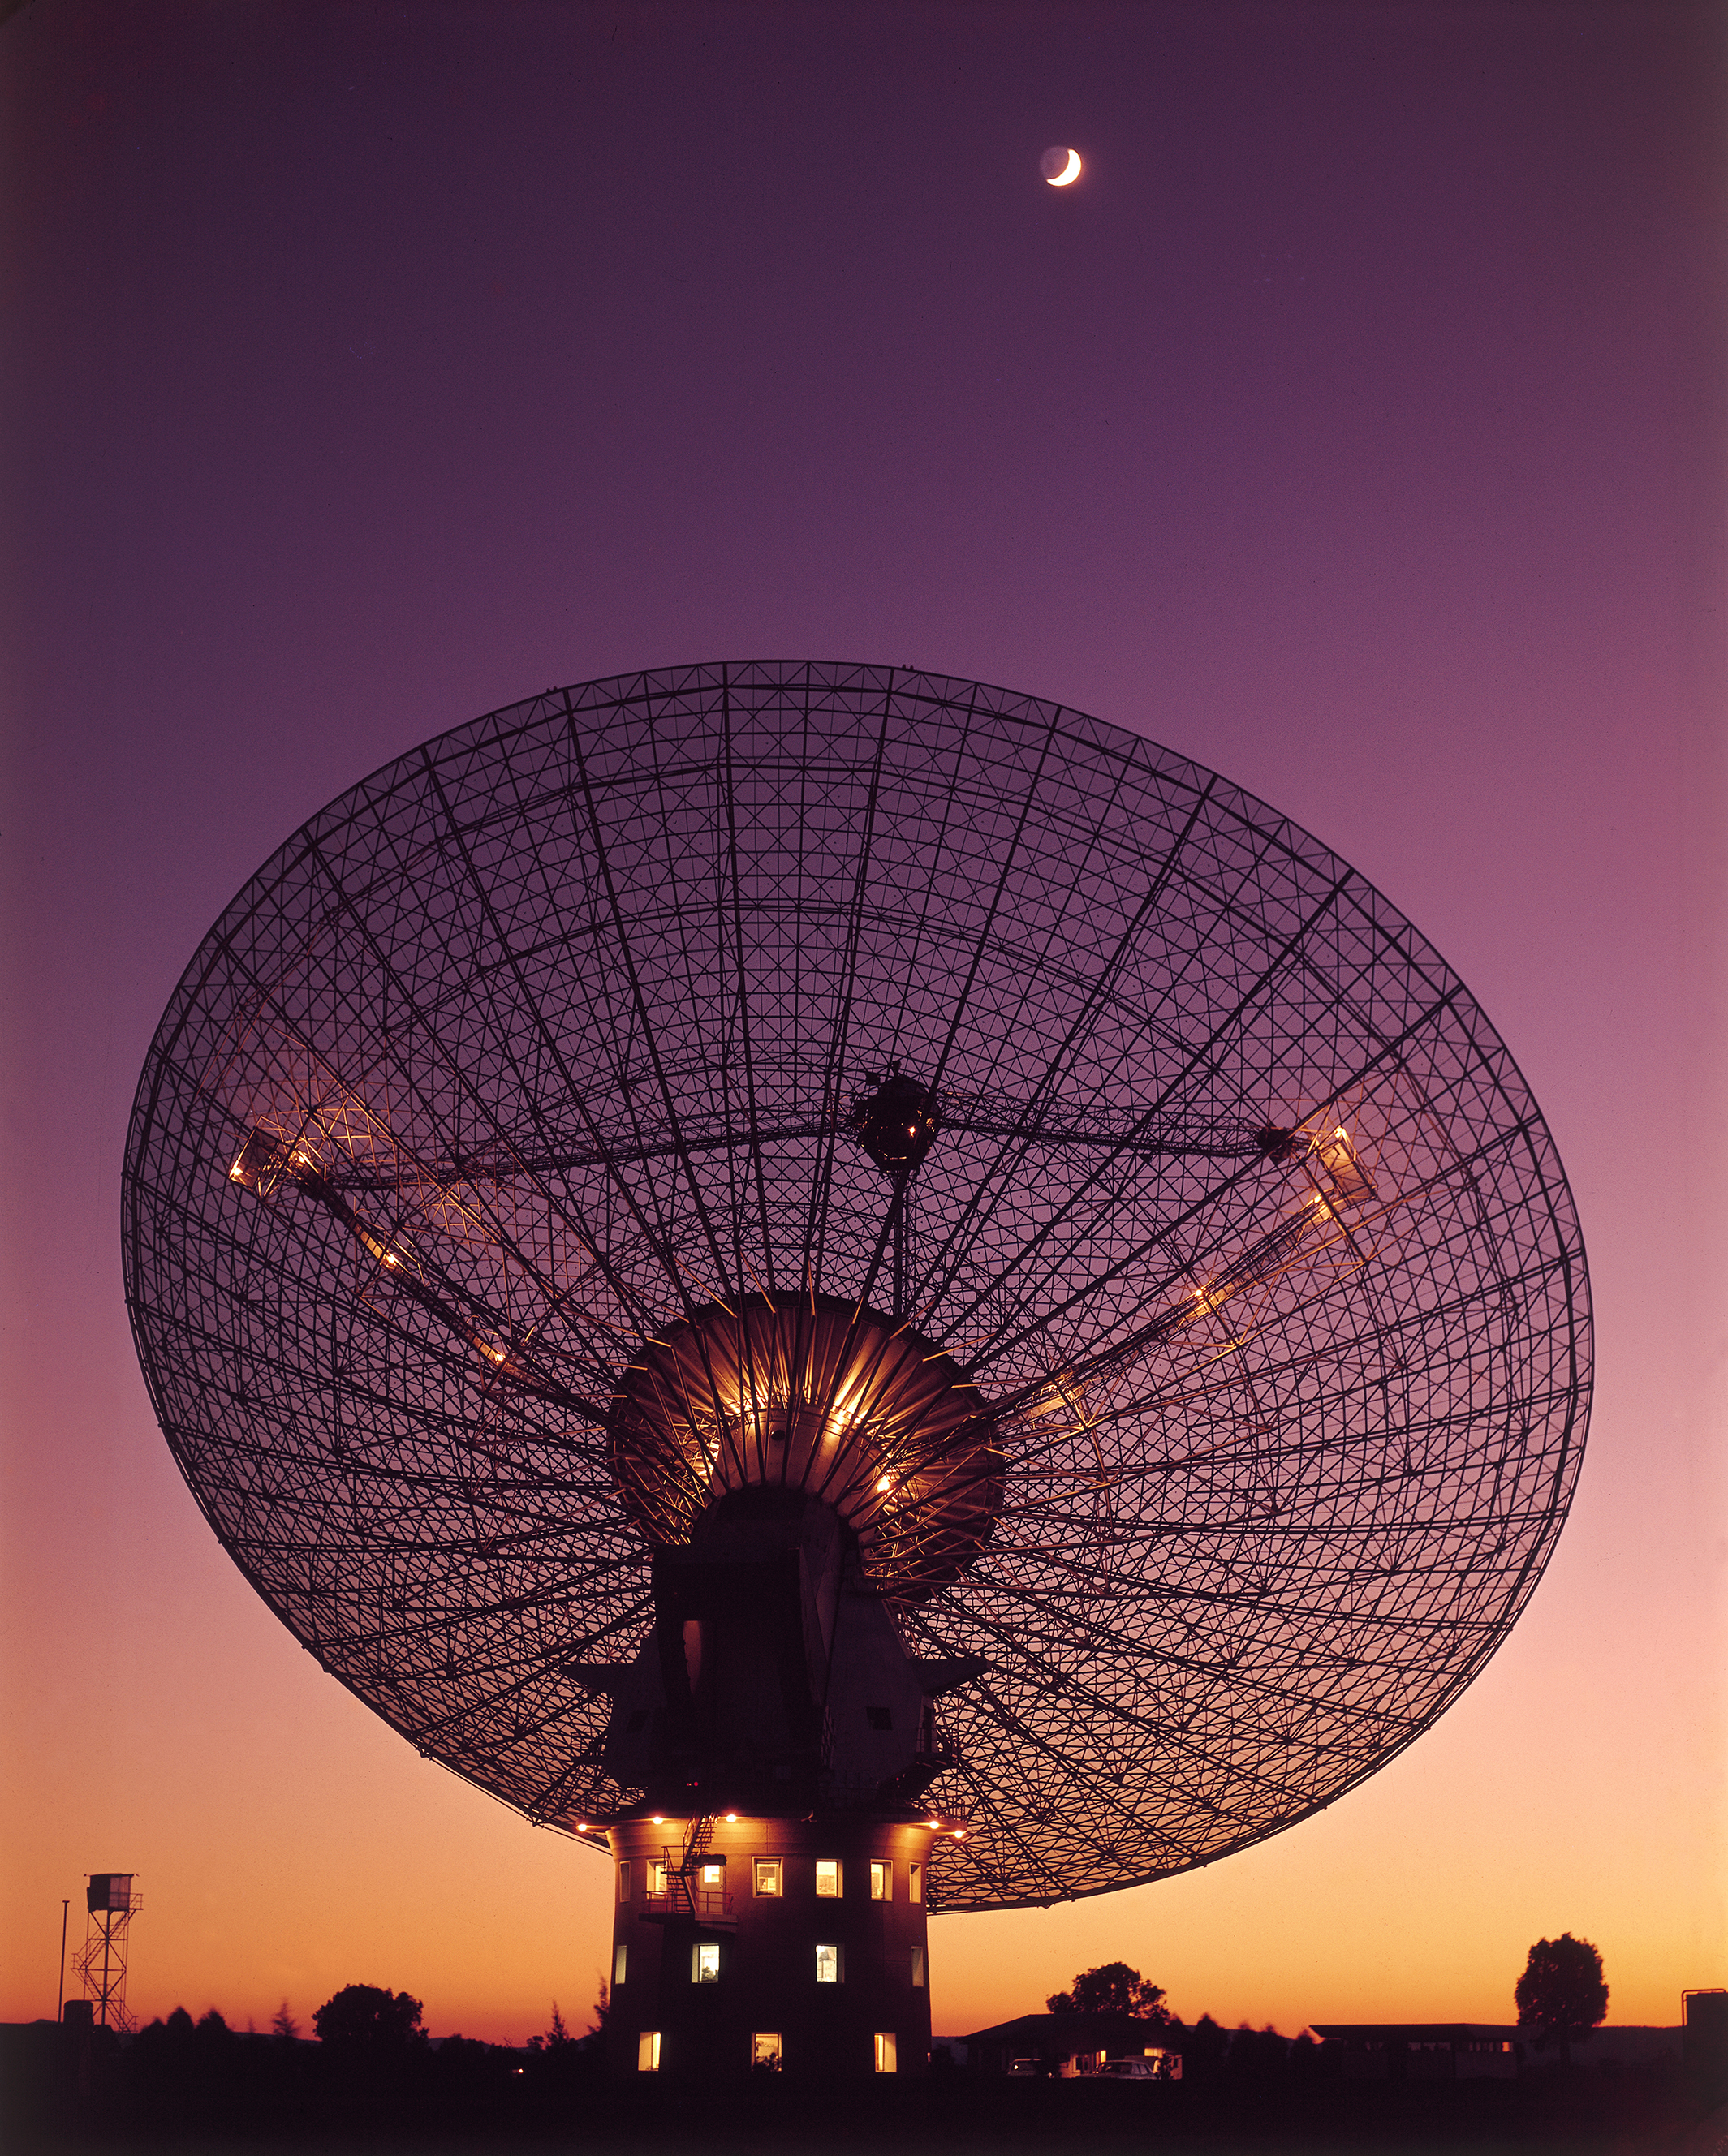 CSIRO's Parkes Radio Telescope - Attractions in Parkes NSW